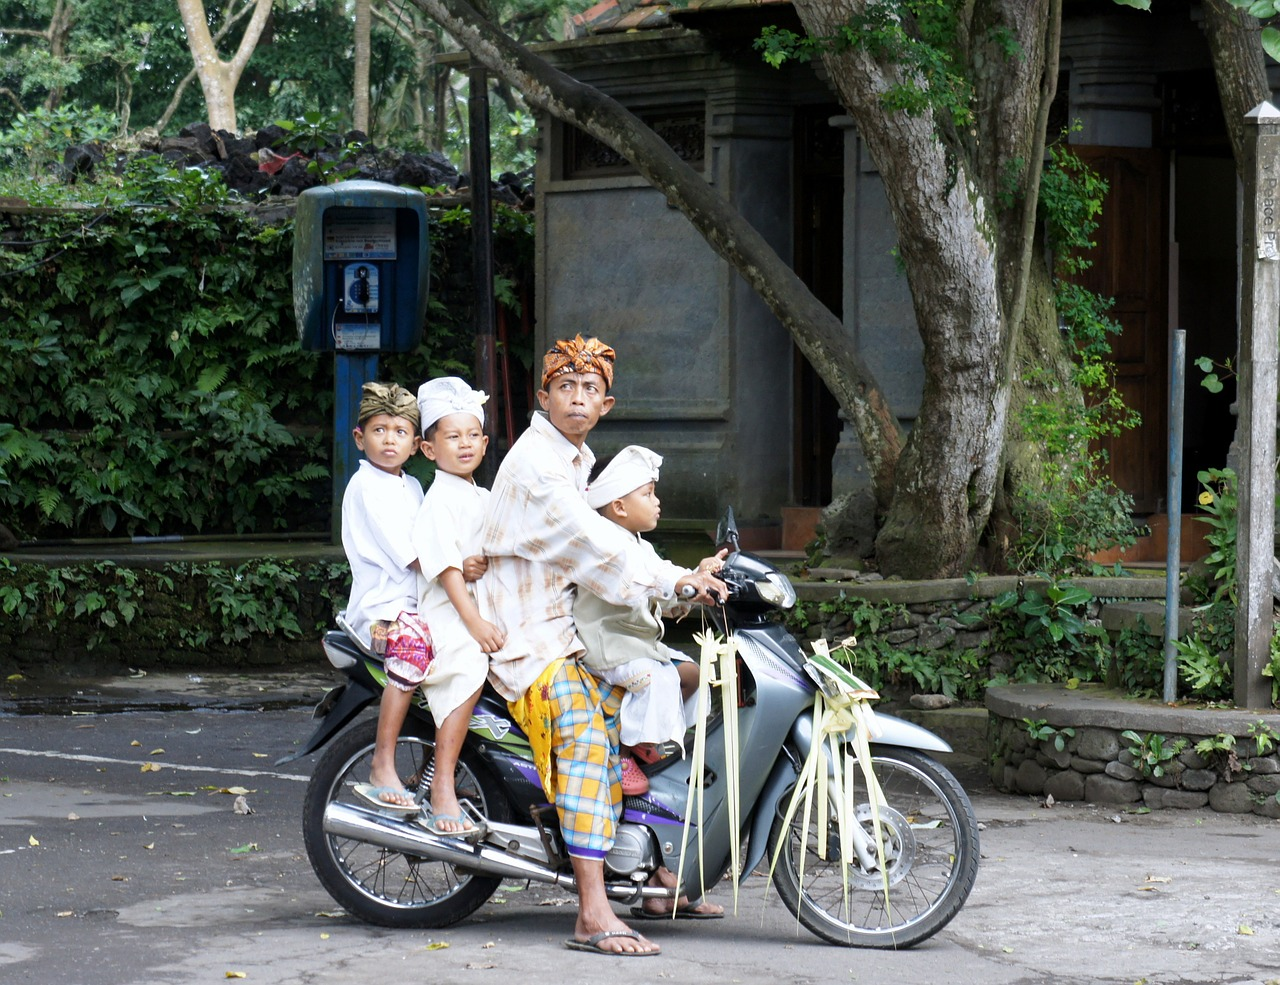 bali temple festival motorcycle free photo